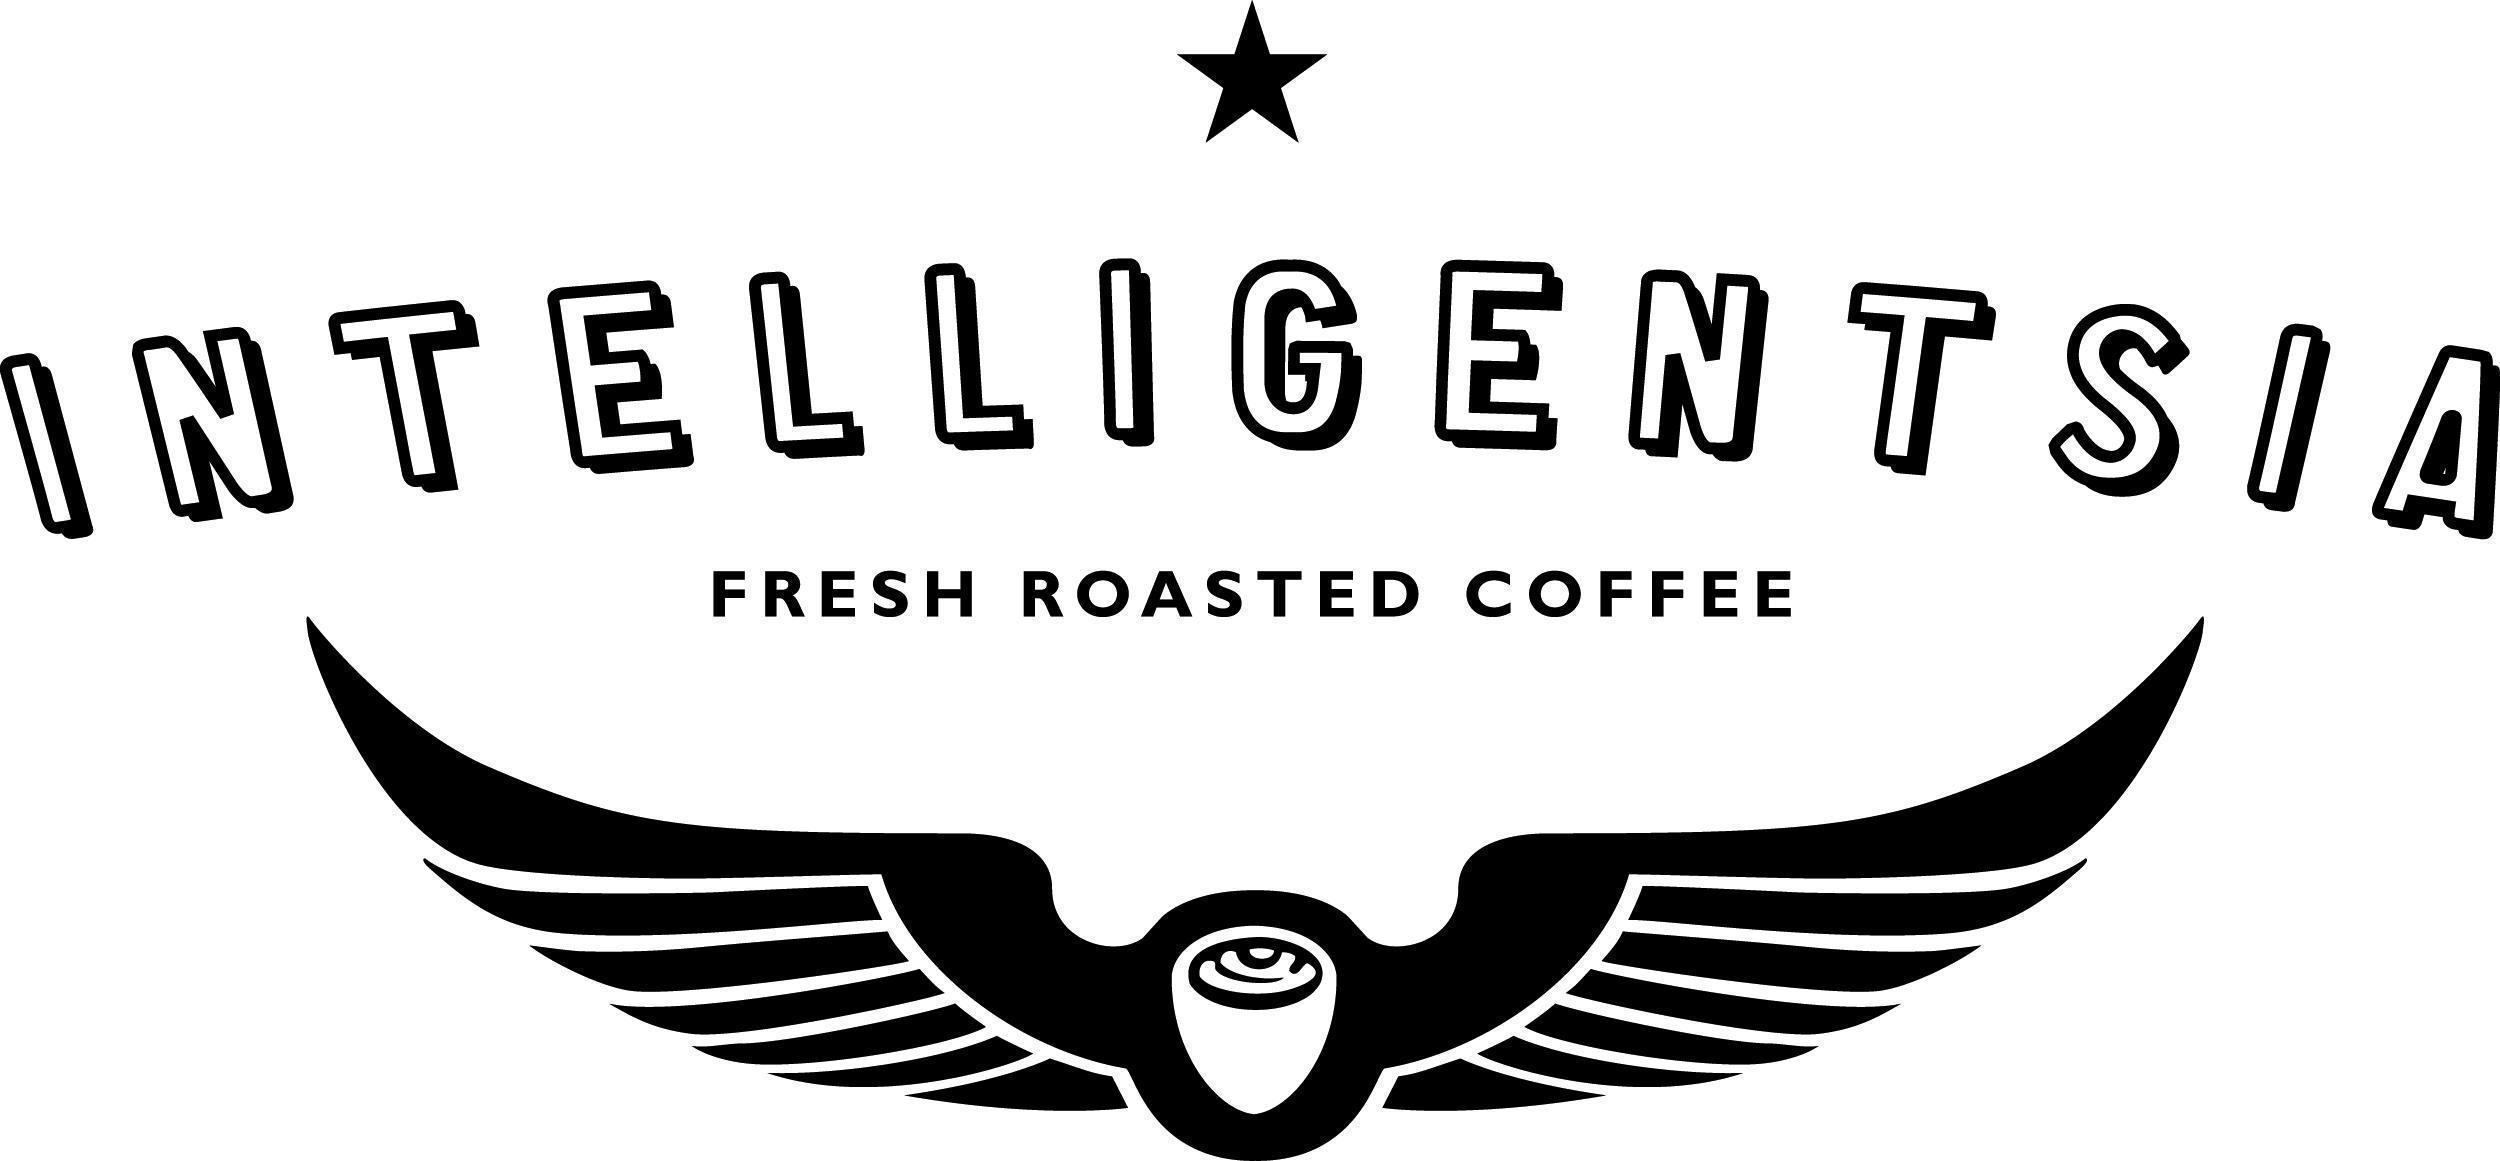 intelligentsia-coffee_owler_20160227_003208_original.jpeg